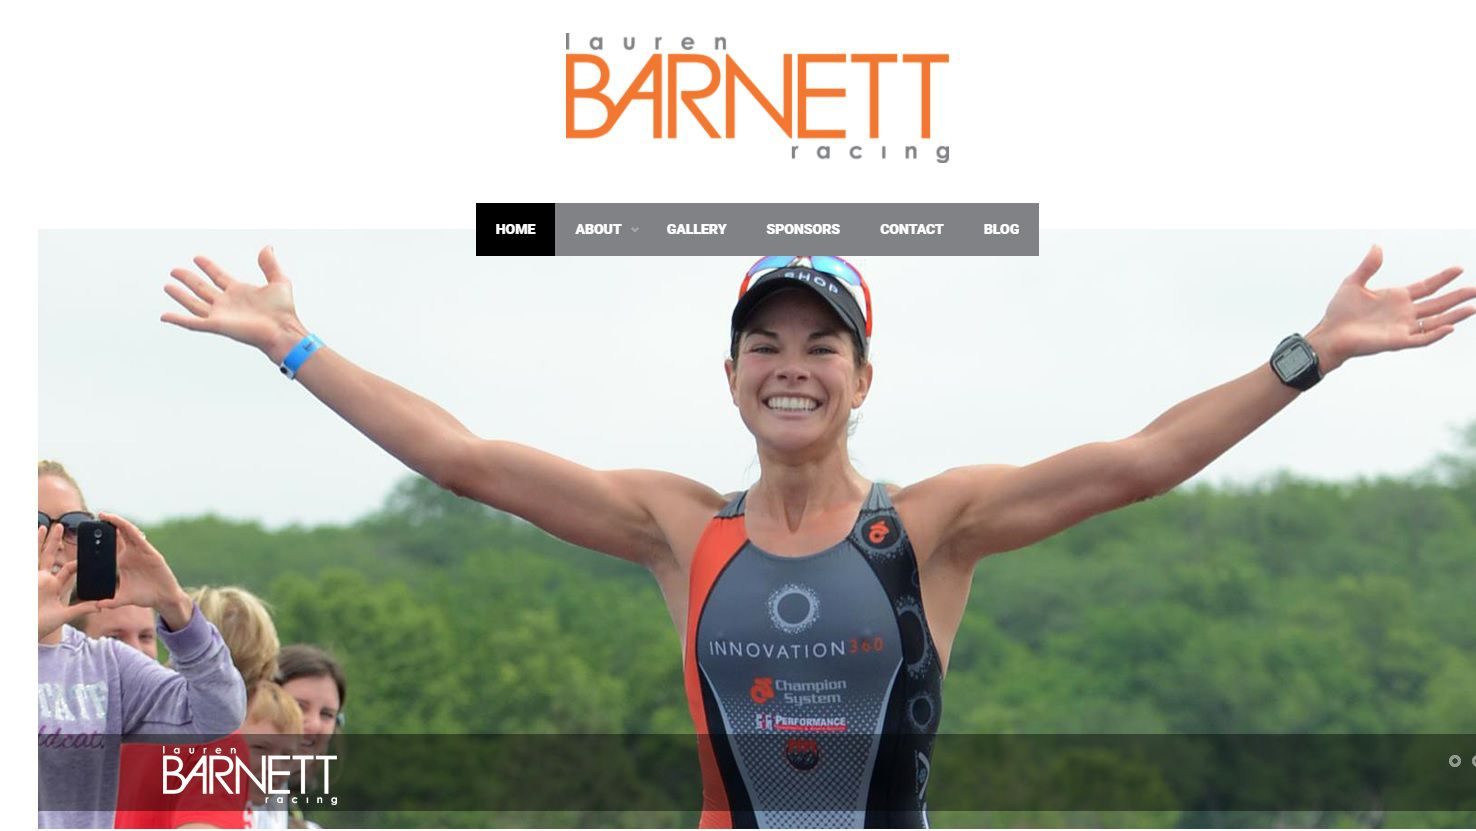 Screen grab from Lauren Barnett's website. The professional triathlete tested positive for a banned substance after winning a 2016 Ironman competition and on Dec. 4 filed a lawsuit against the Dallas-based company that manufacturers a supplement she took before the race